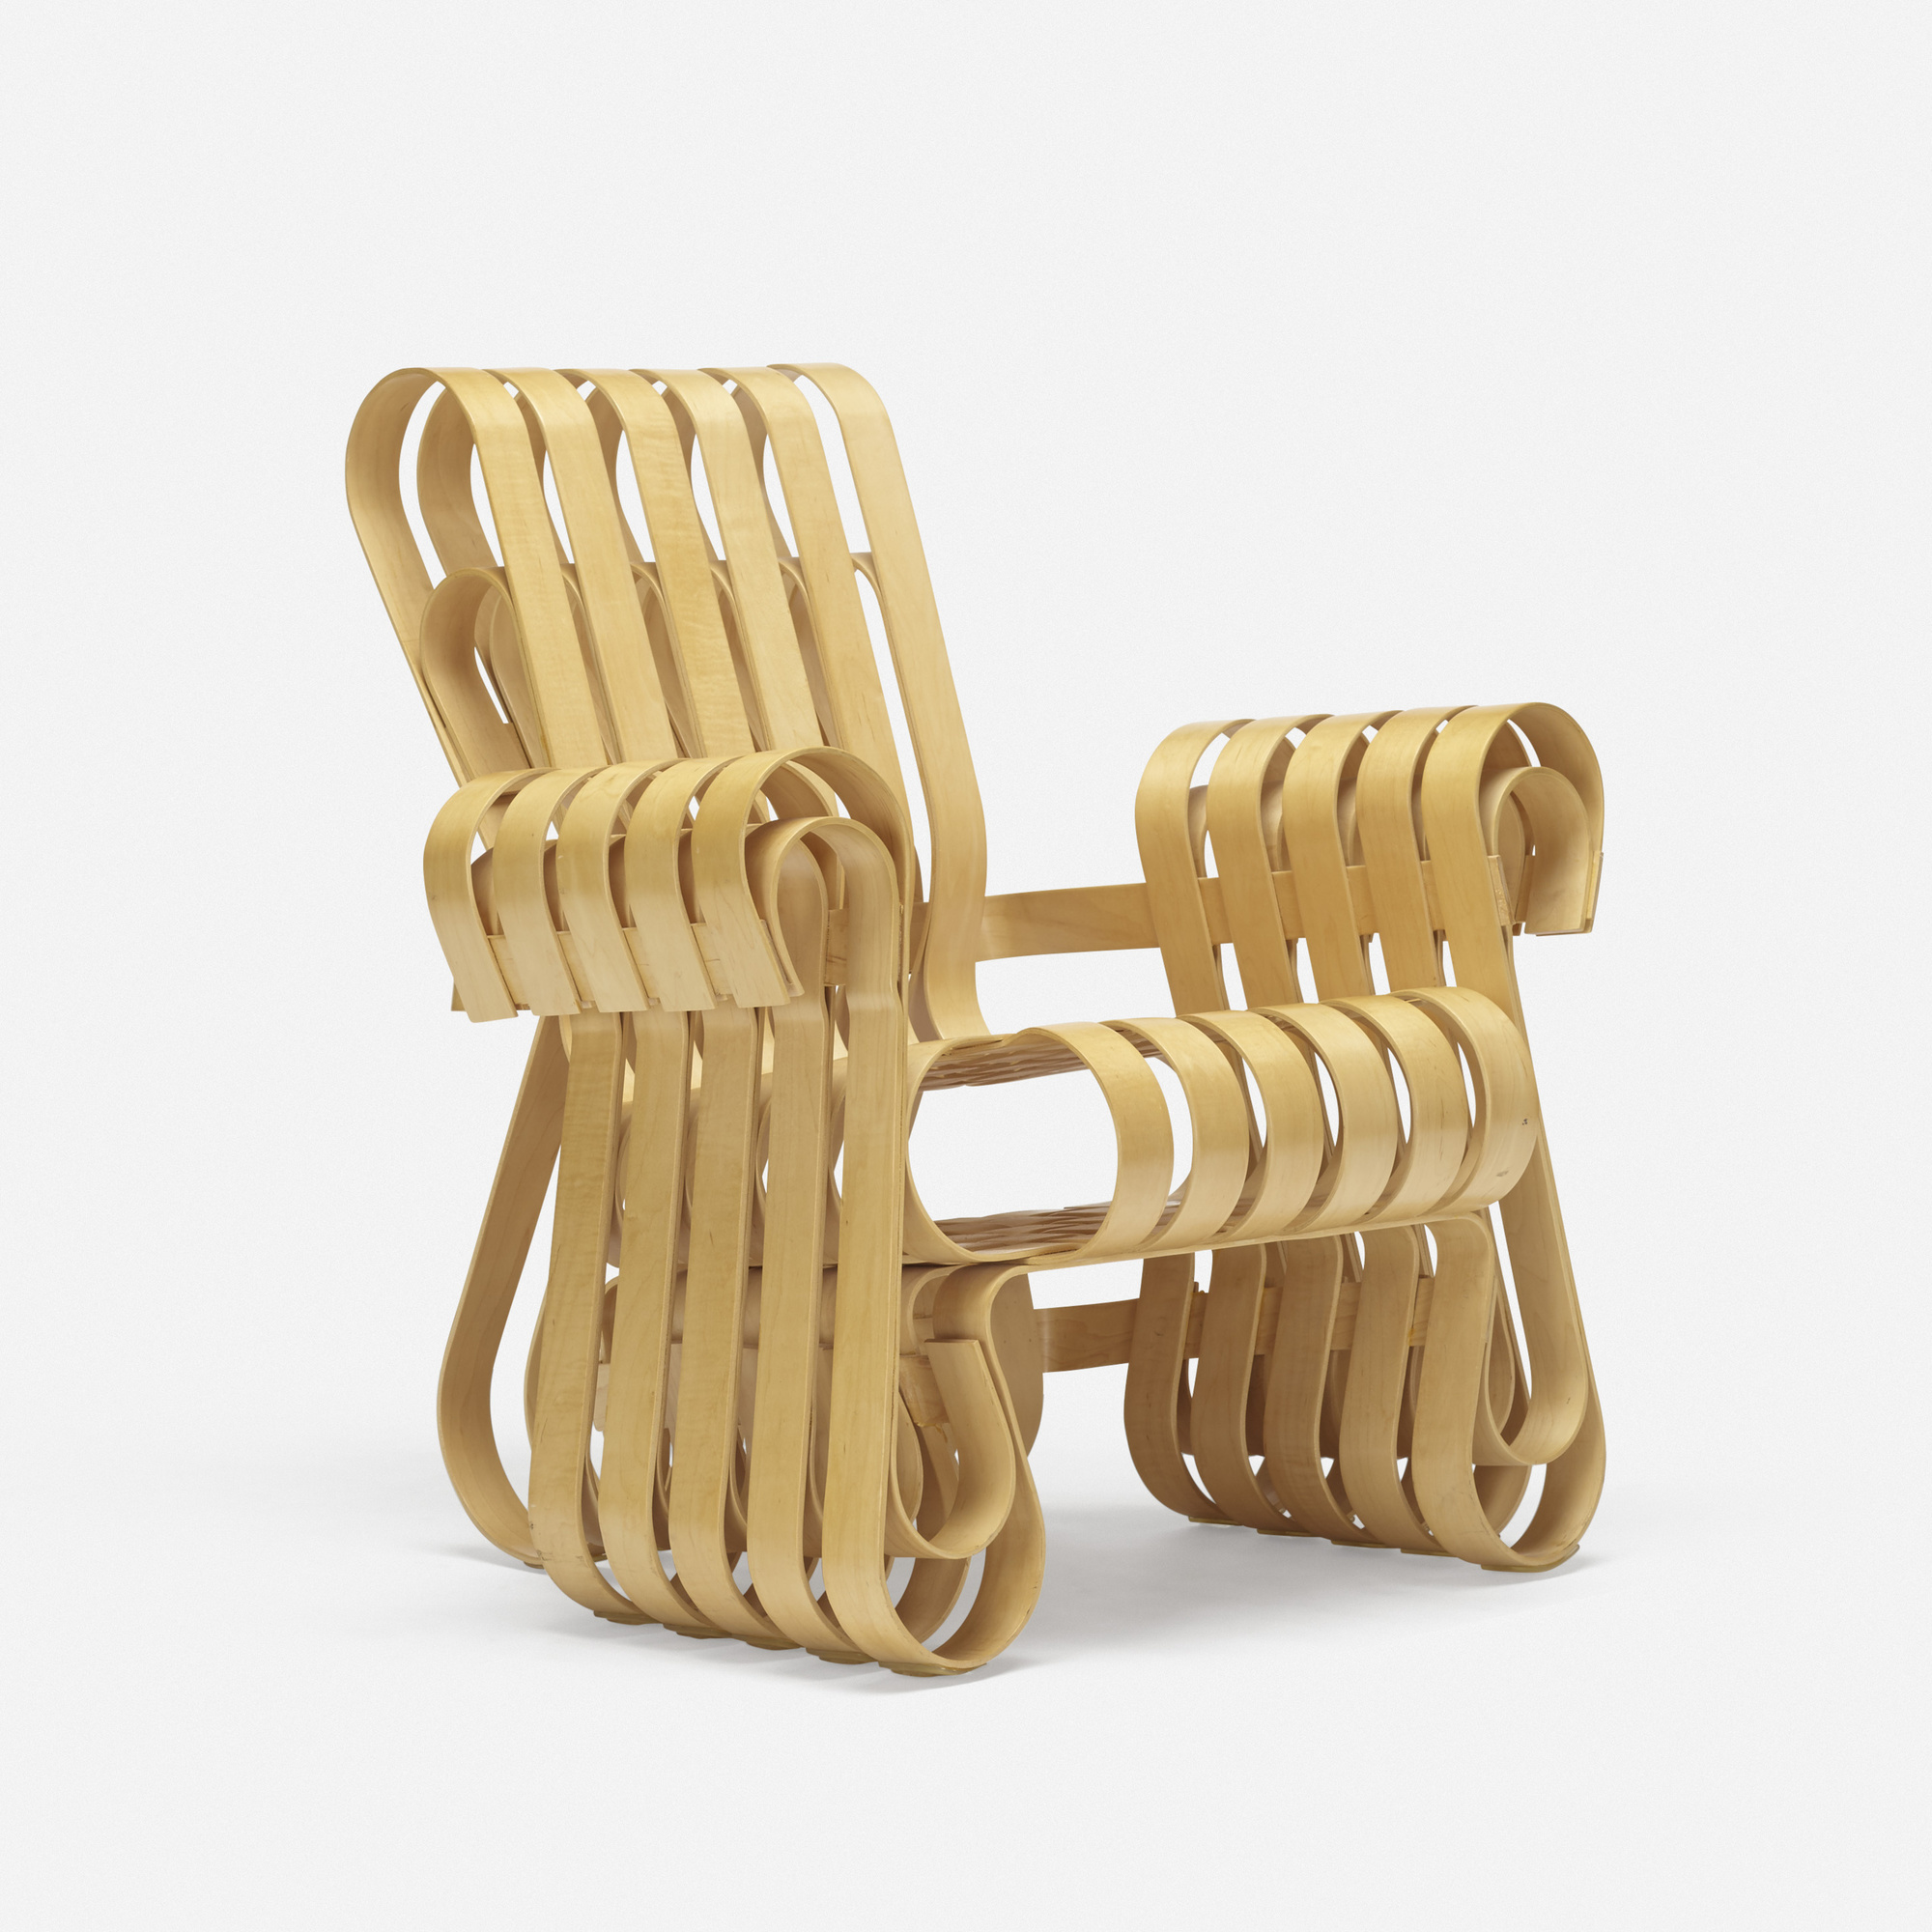 173: Frank Gehry / Power Play Chair (1 Of 4)